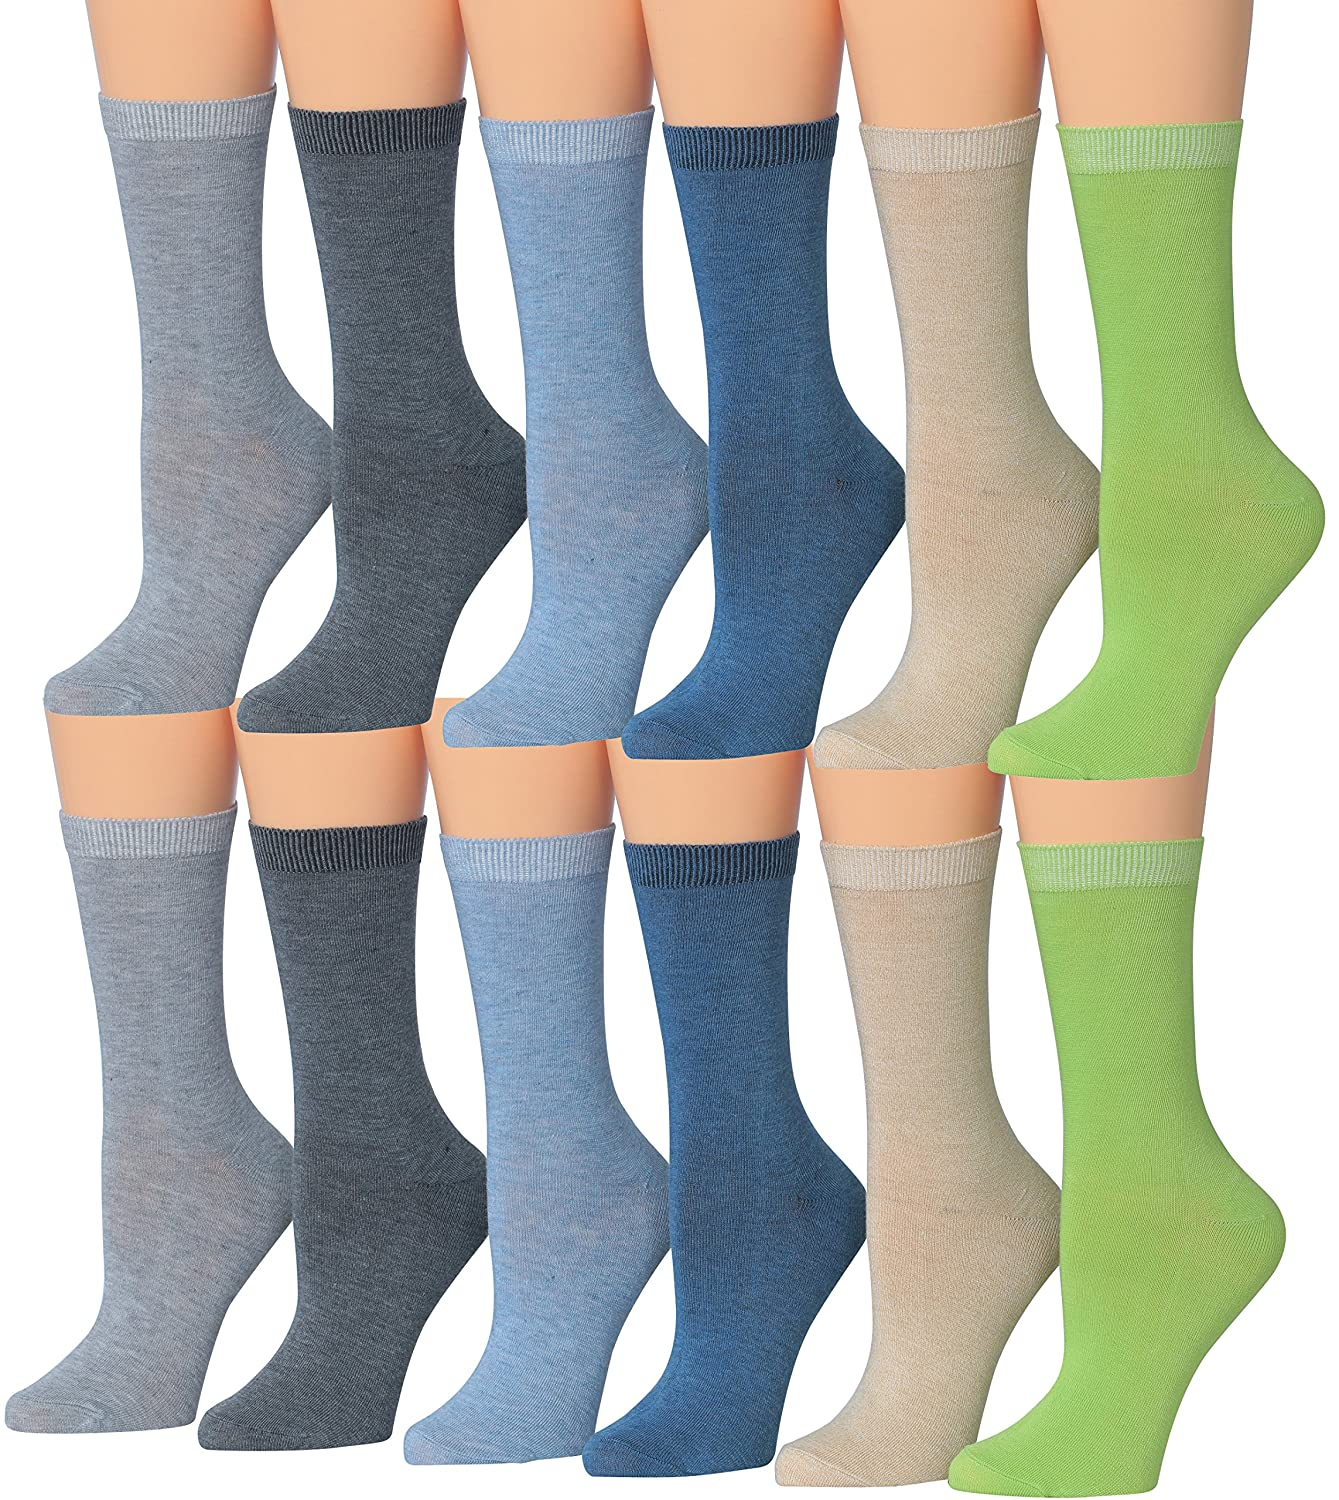 Tipi Toe Women's 12-Pairs Lightweight Solid Colored Crew Socks Solid Black)